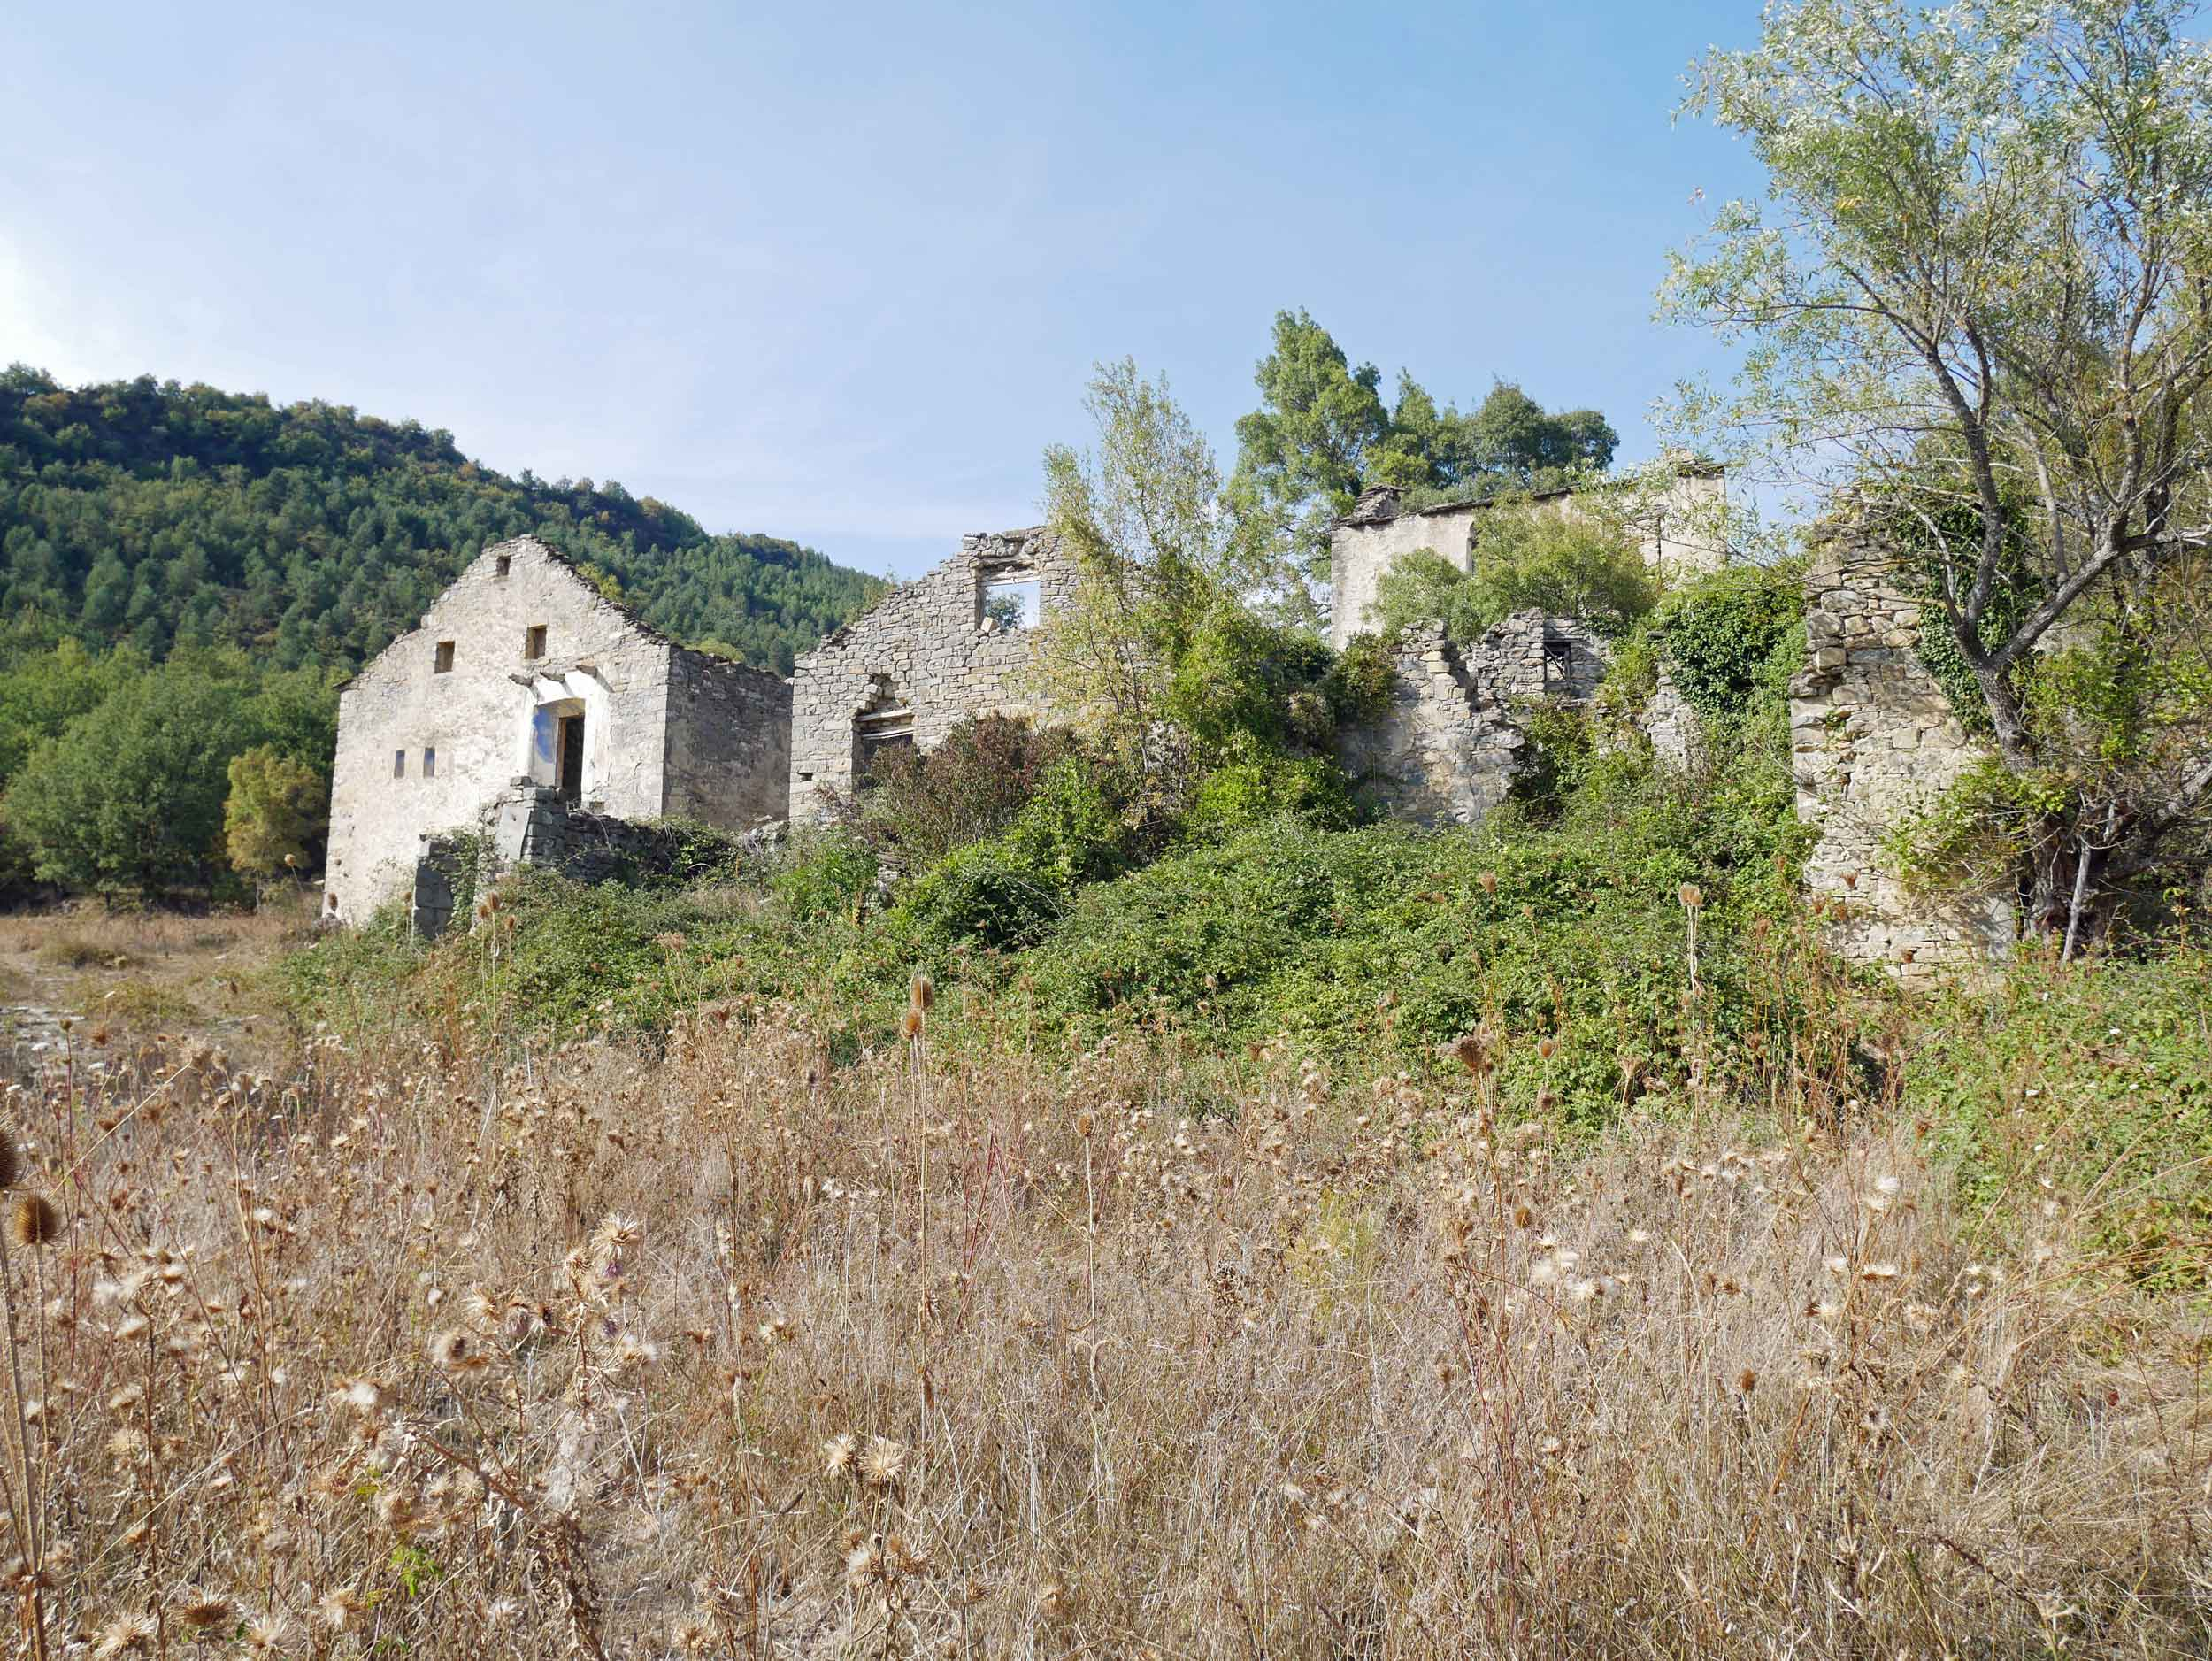 Throughout Spain's Solana Valley there are many 'ghost villages,'abandoned in the 1960s and 1970s due to governmental land usage, changes in agricultural practices, and General Franco's push to move the country's youth into its cities (Sept 21).